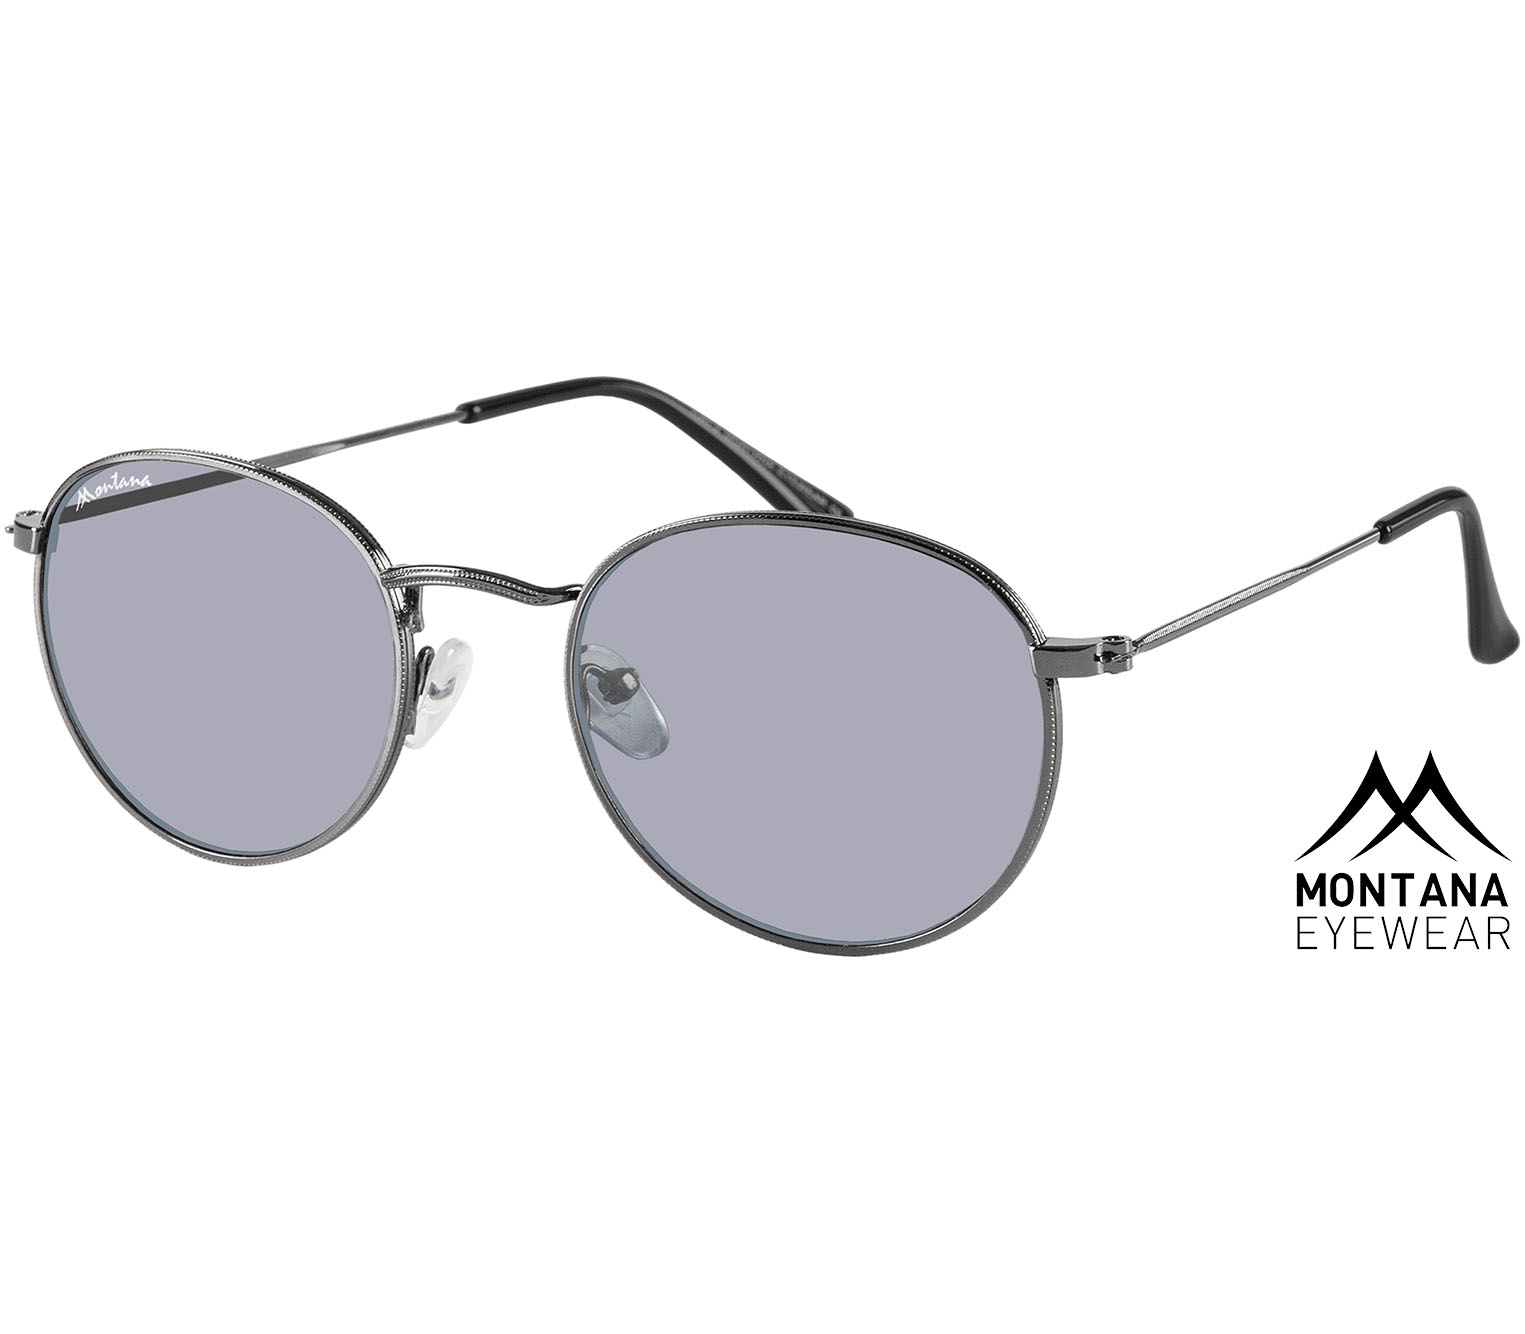 Antigua (Gunmetal) Retro Sunglasses